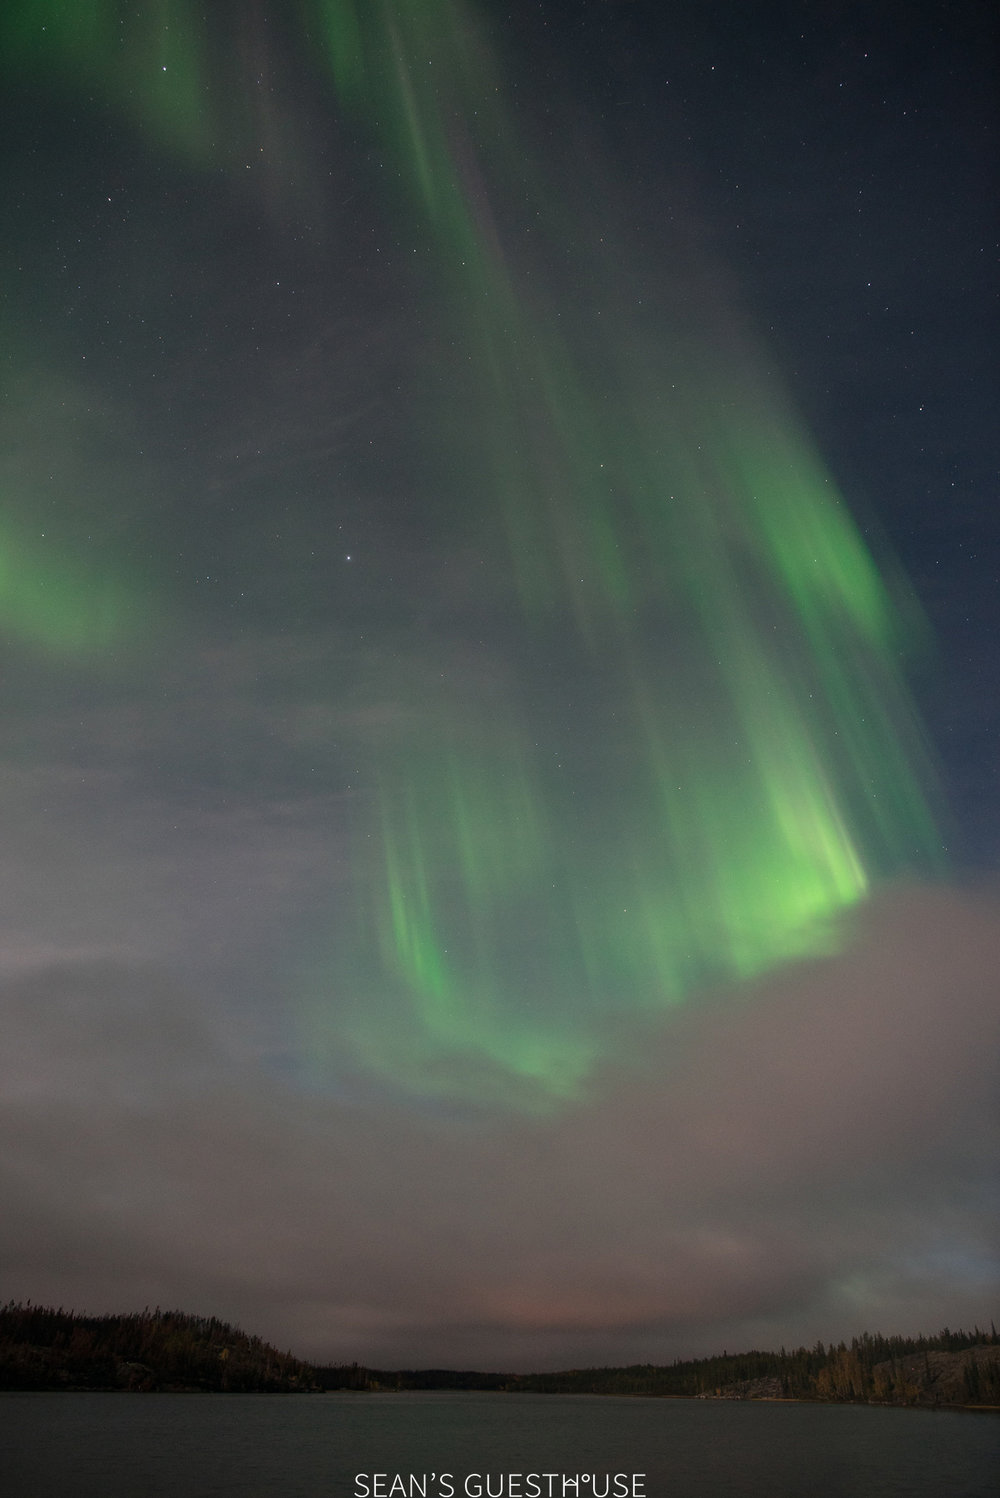 Sean's Guesthouse - Yellowknife Northern Lights Viewing - 6.jpg